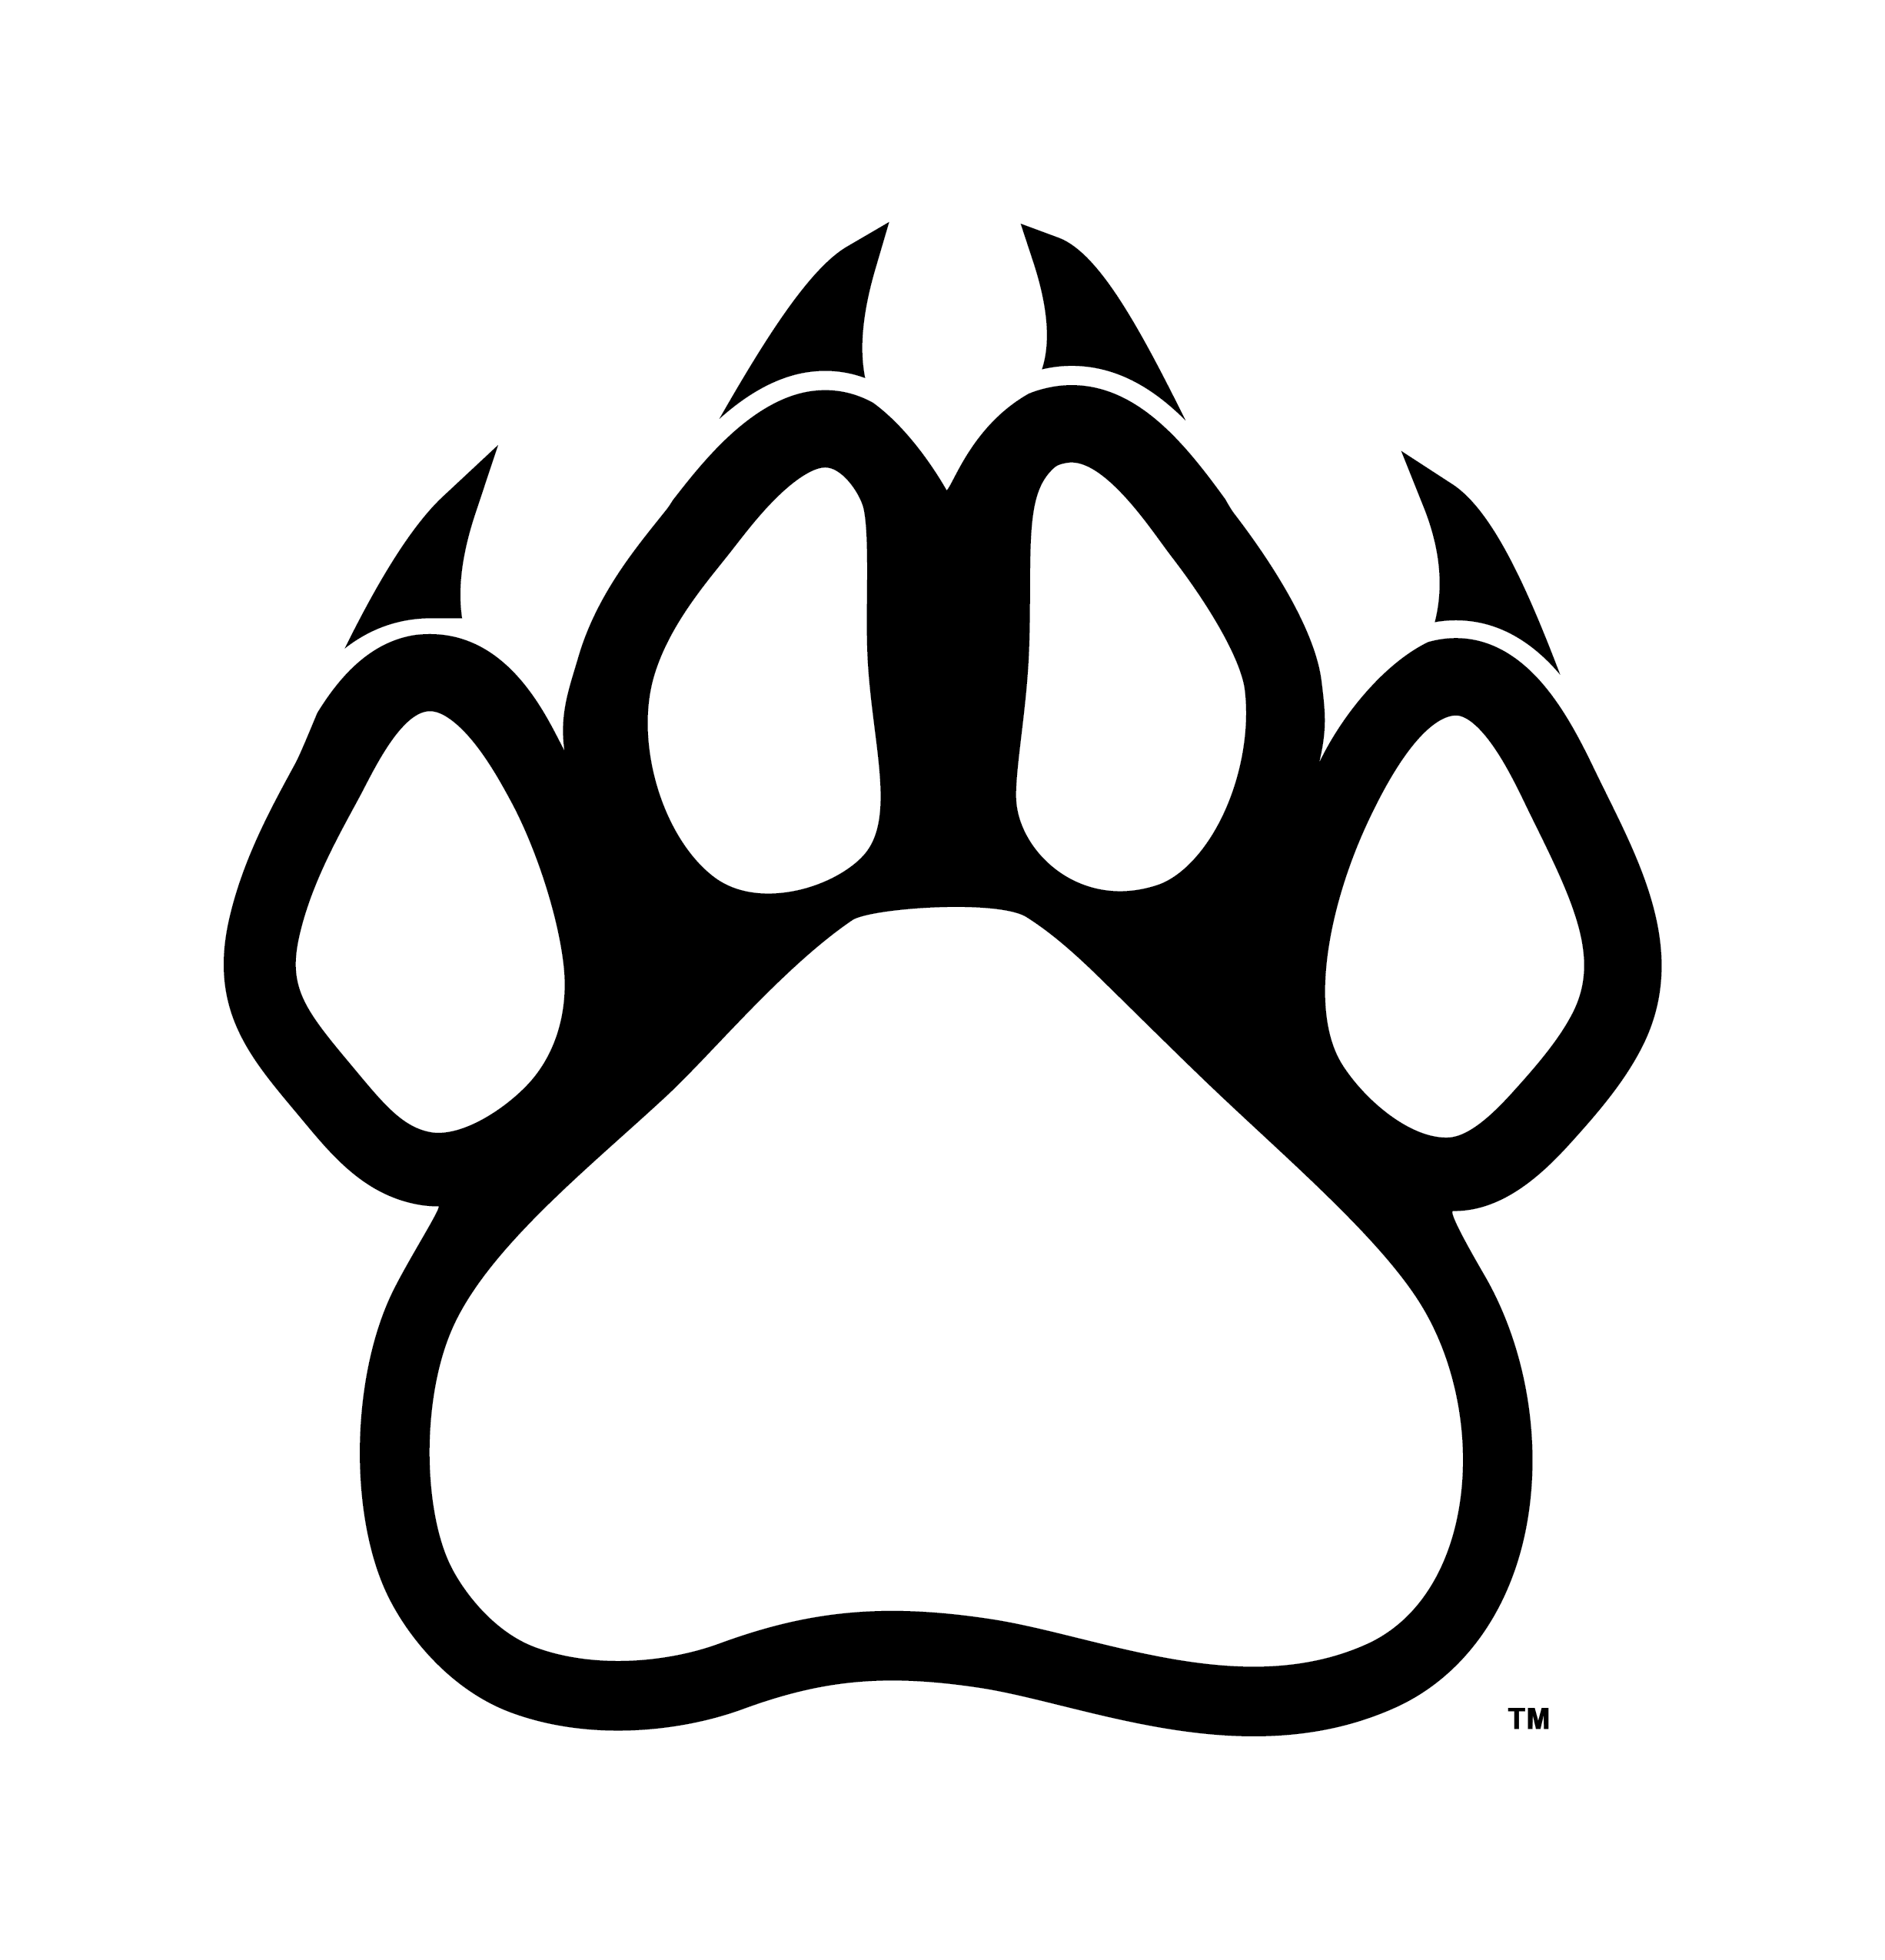 Panther print png. Paw outline clip art